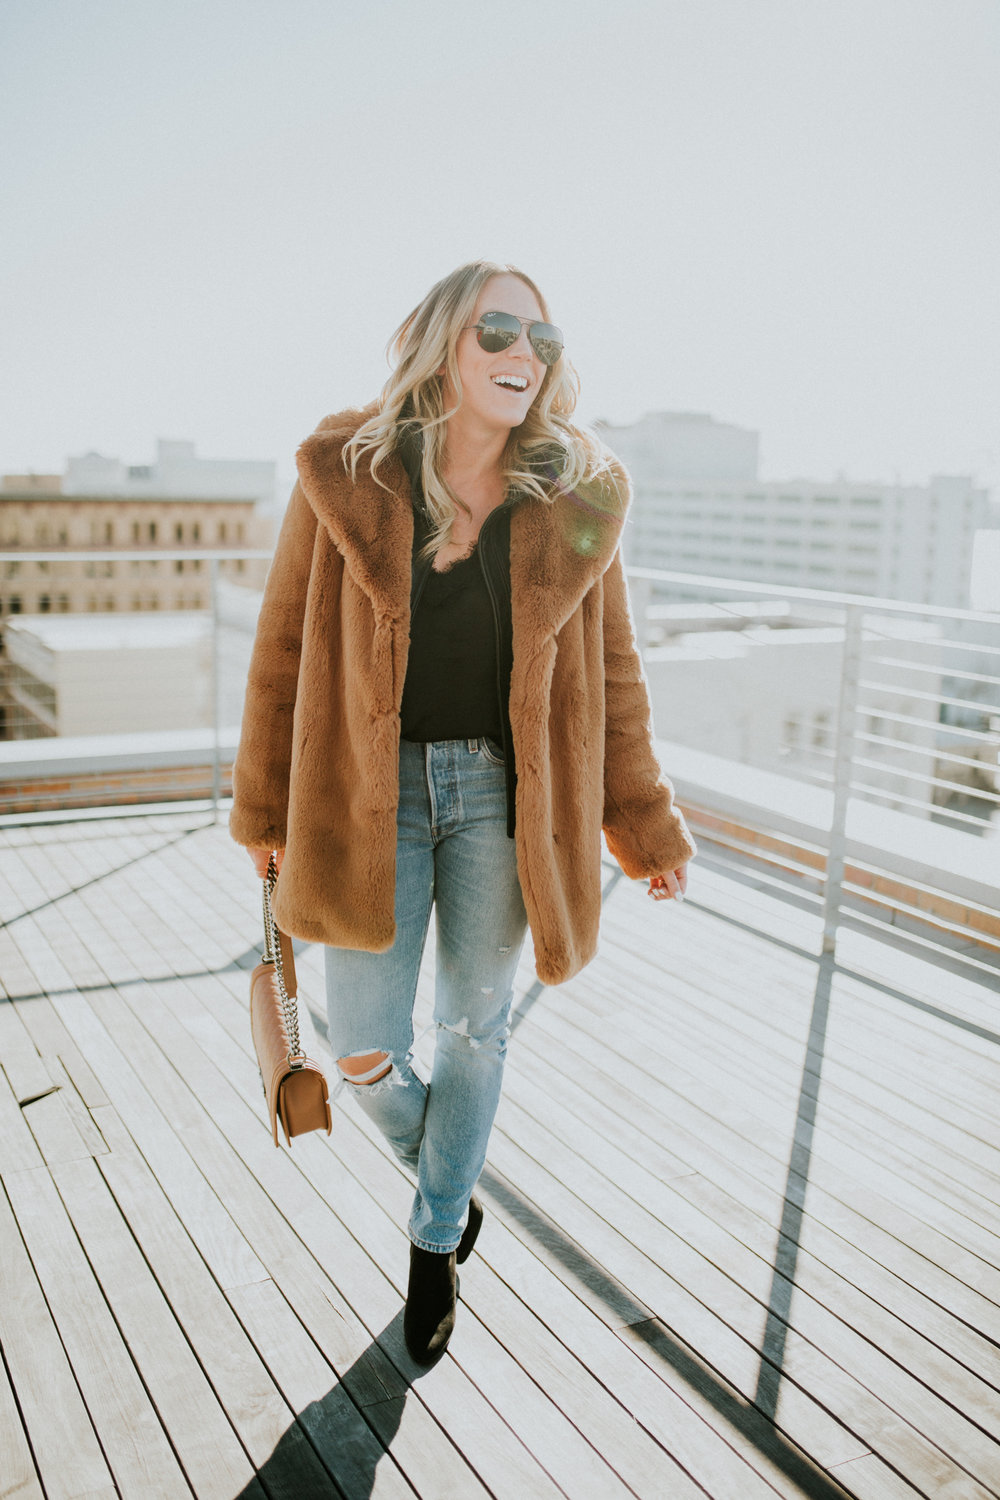 Blogger Gracefully Taylored in Zara Coat and Levis(15).jpg